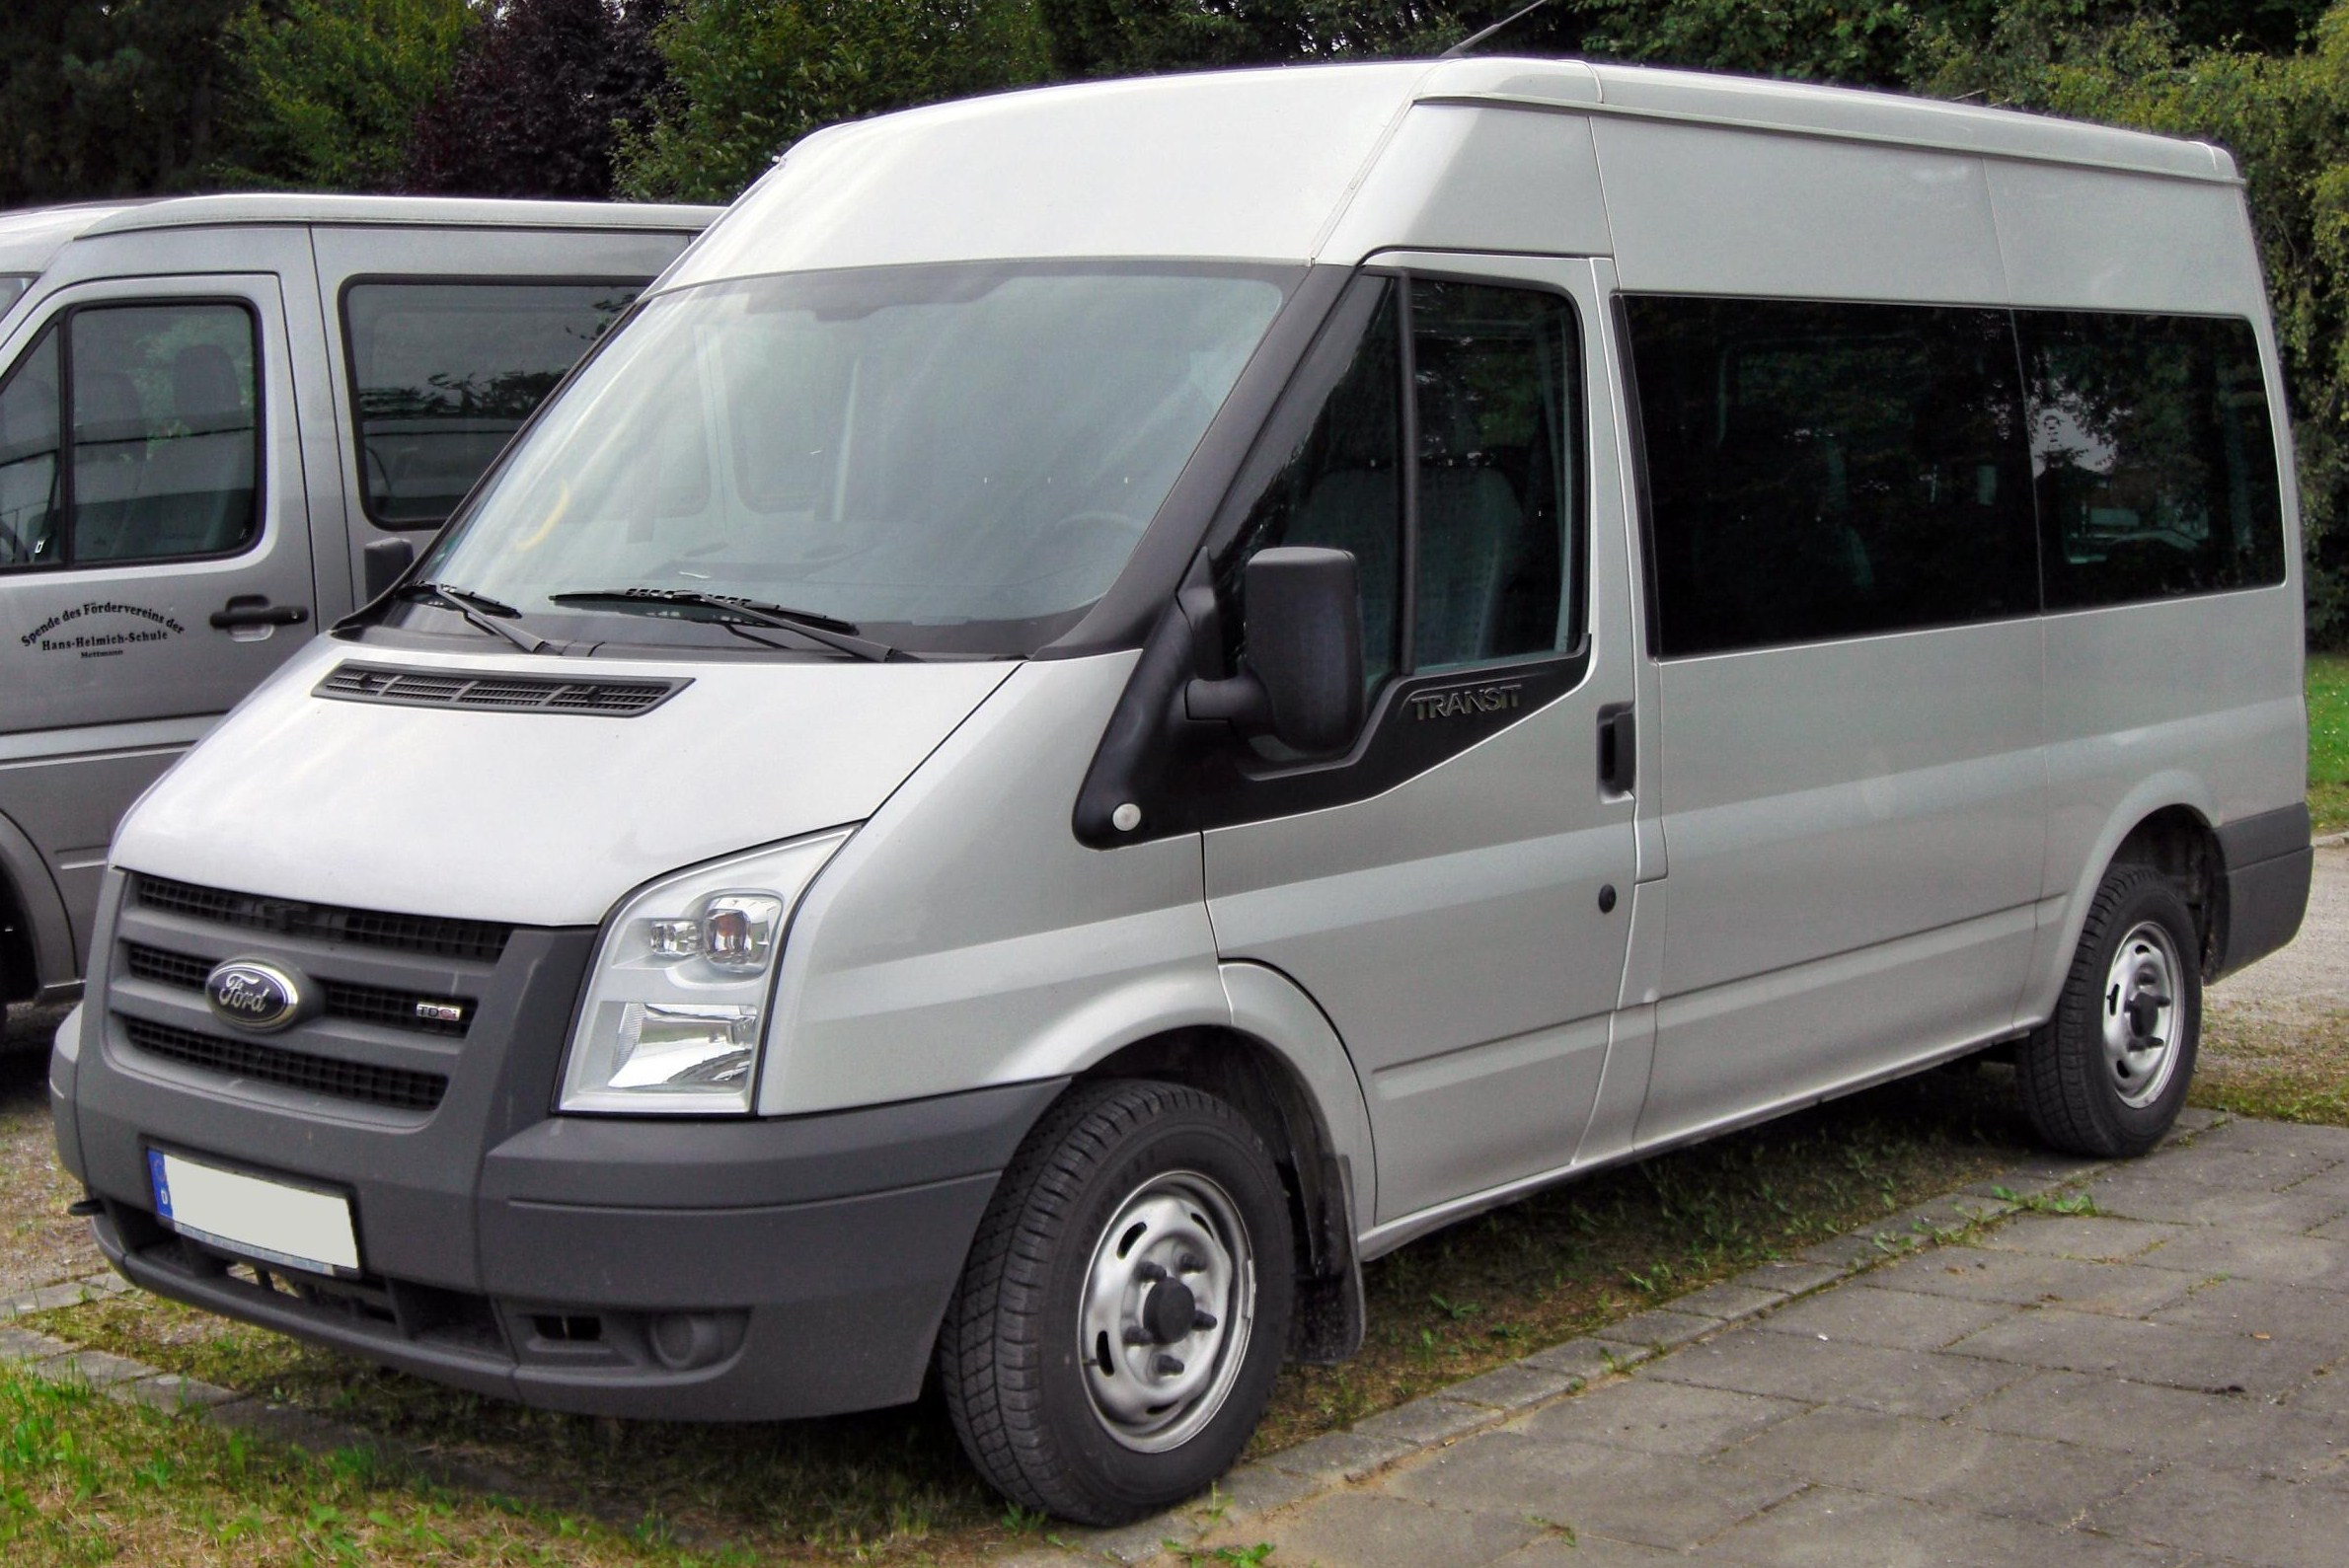 Avis Car Van Hire Euston Station London